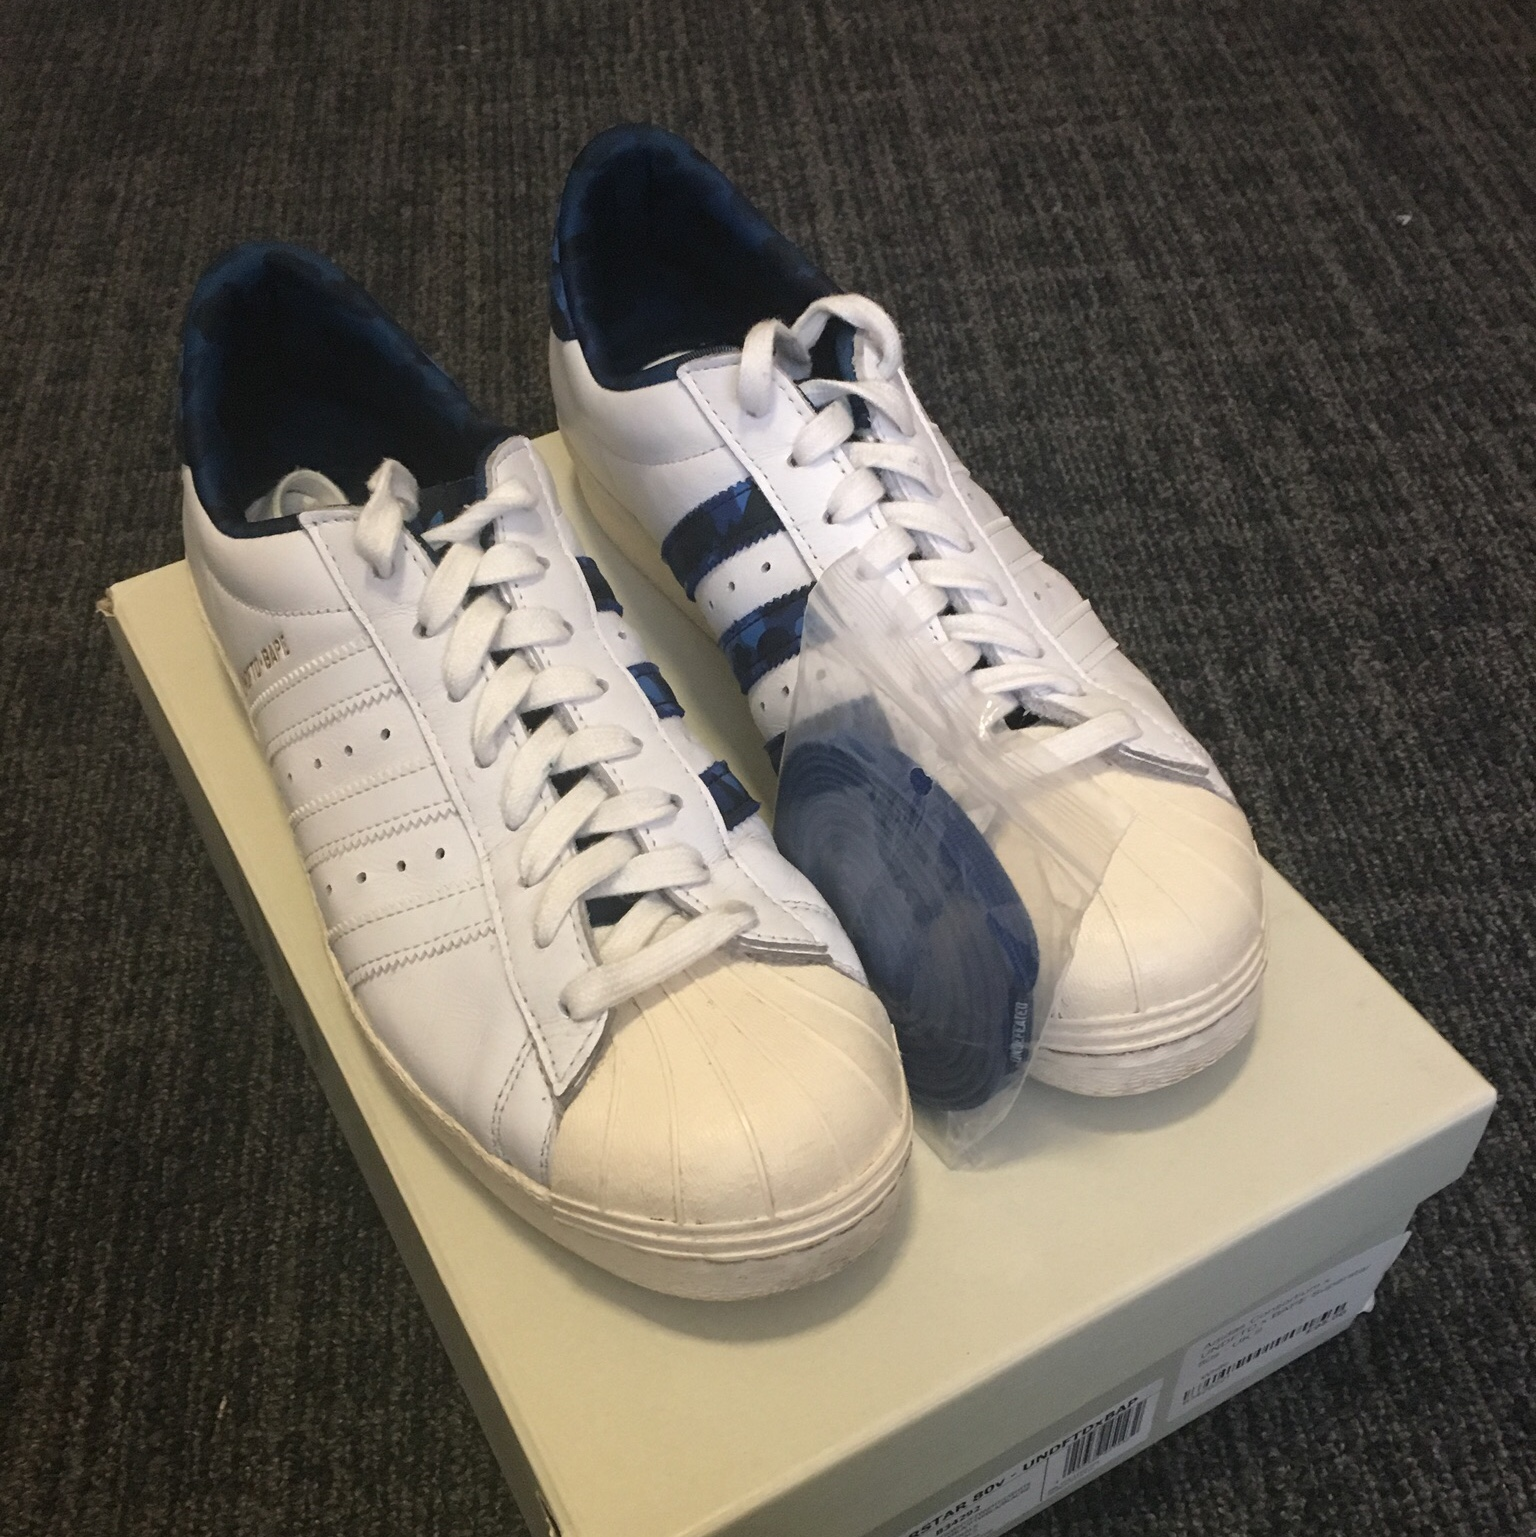 adidas Superstar 80s New Bold Shoes Μα ρο adidas Ελλ δα